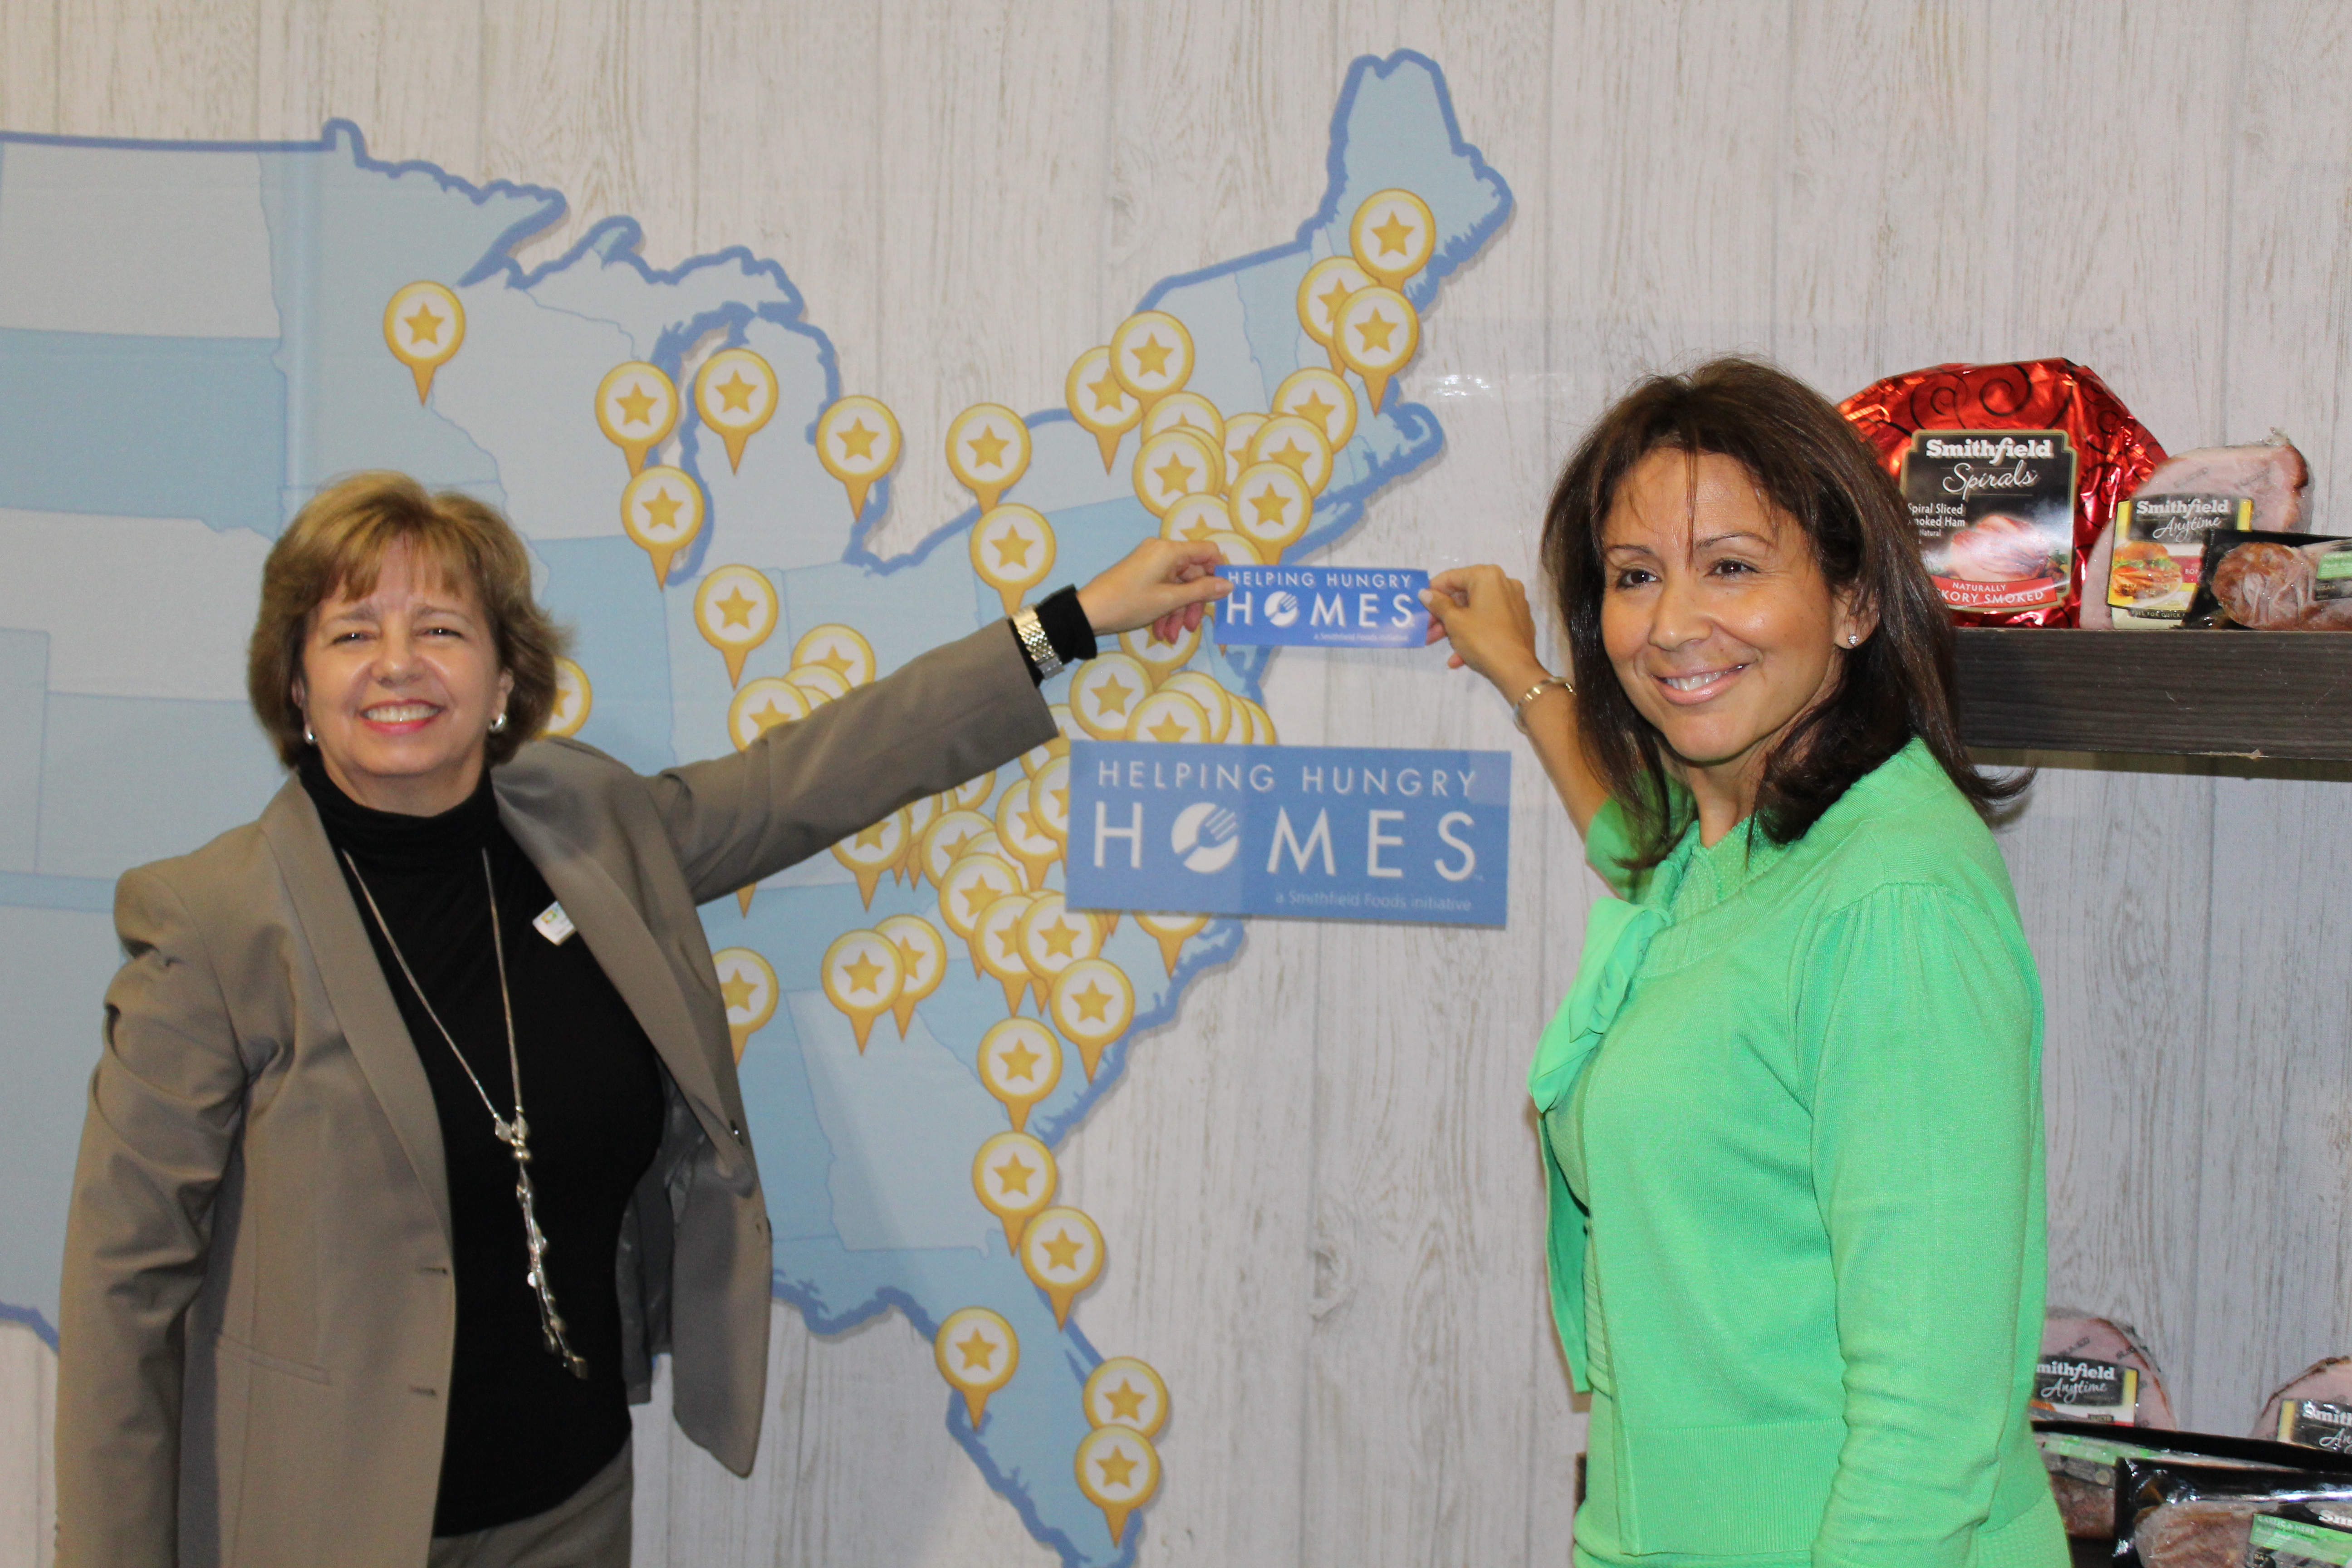 Christine Magyarits, ShopRite, and Debra Vizzi, Community FoodBank of New Jersey